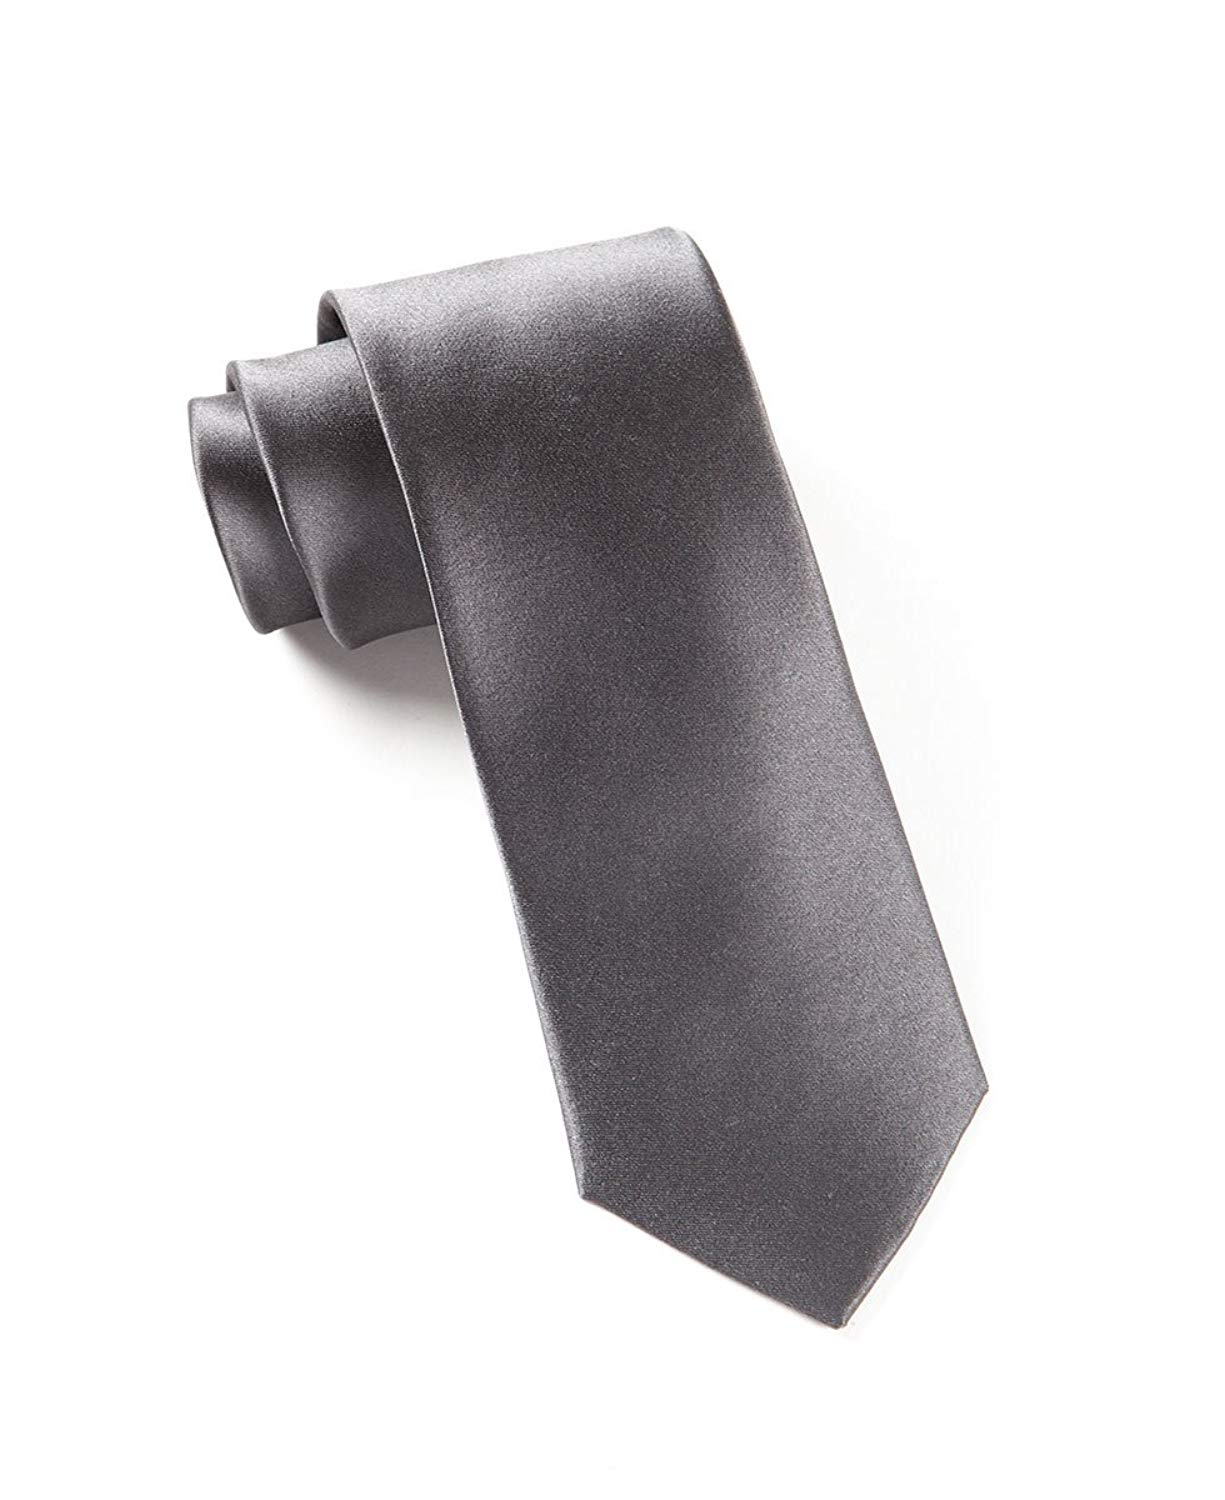 623be31cb263 Get Quotations · The Tie Bar 100% Woven Silk Charcoal Solid Satin Tie